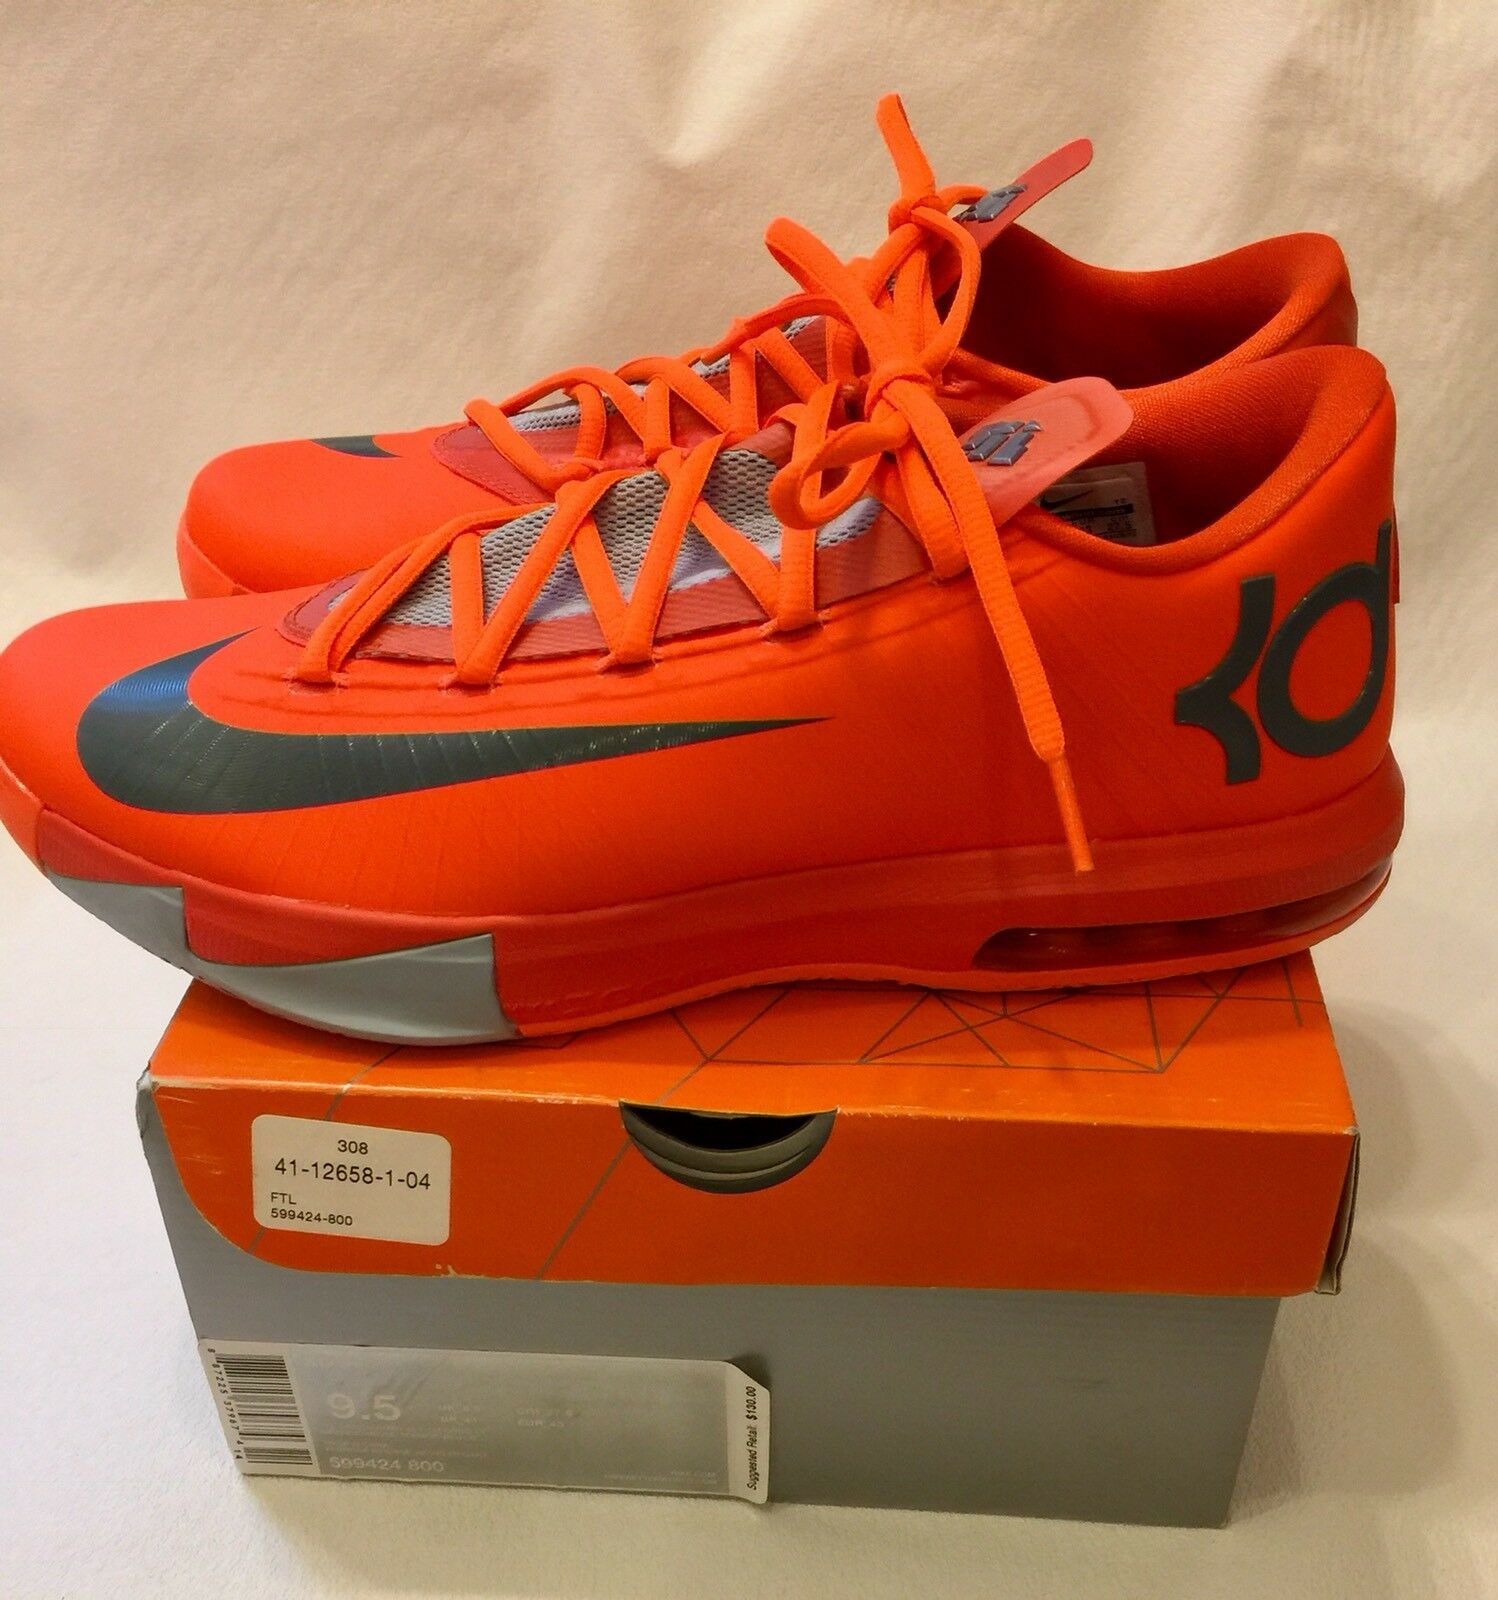 Nike KD 6 VI Kevin Durant Total Orange 599424-800 US 9.5